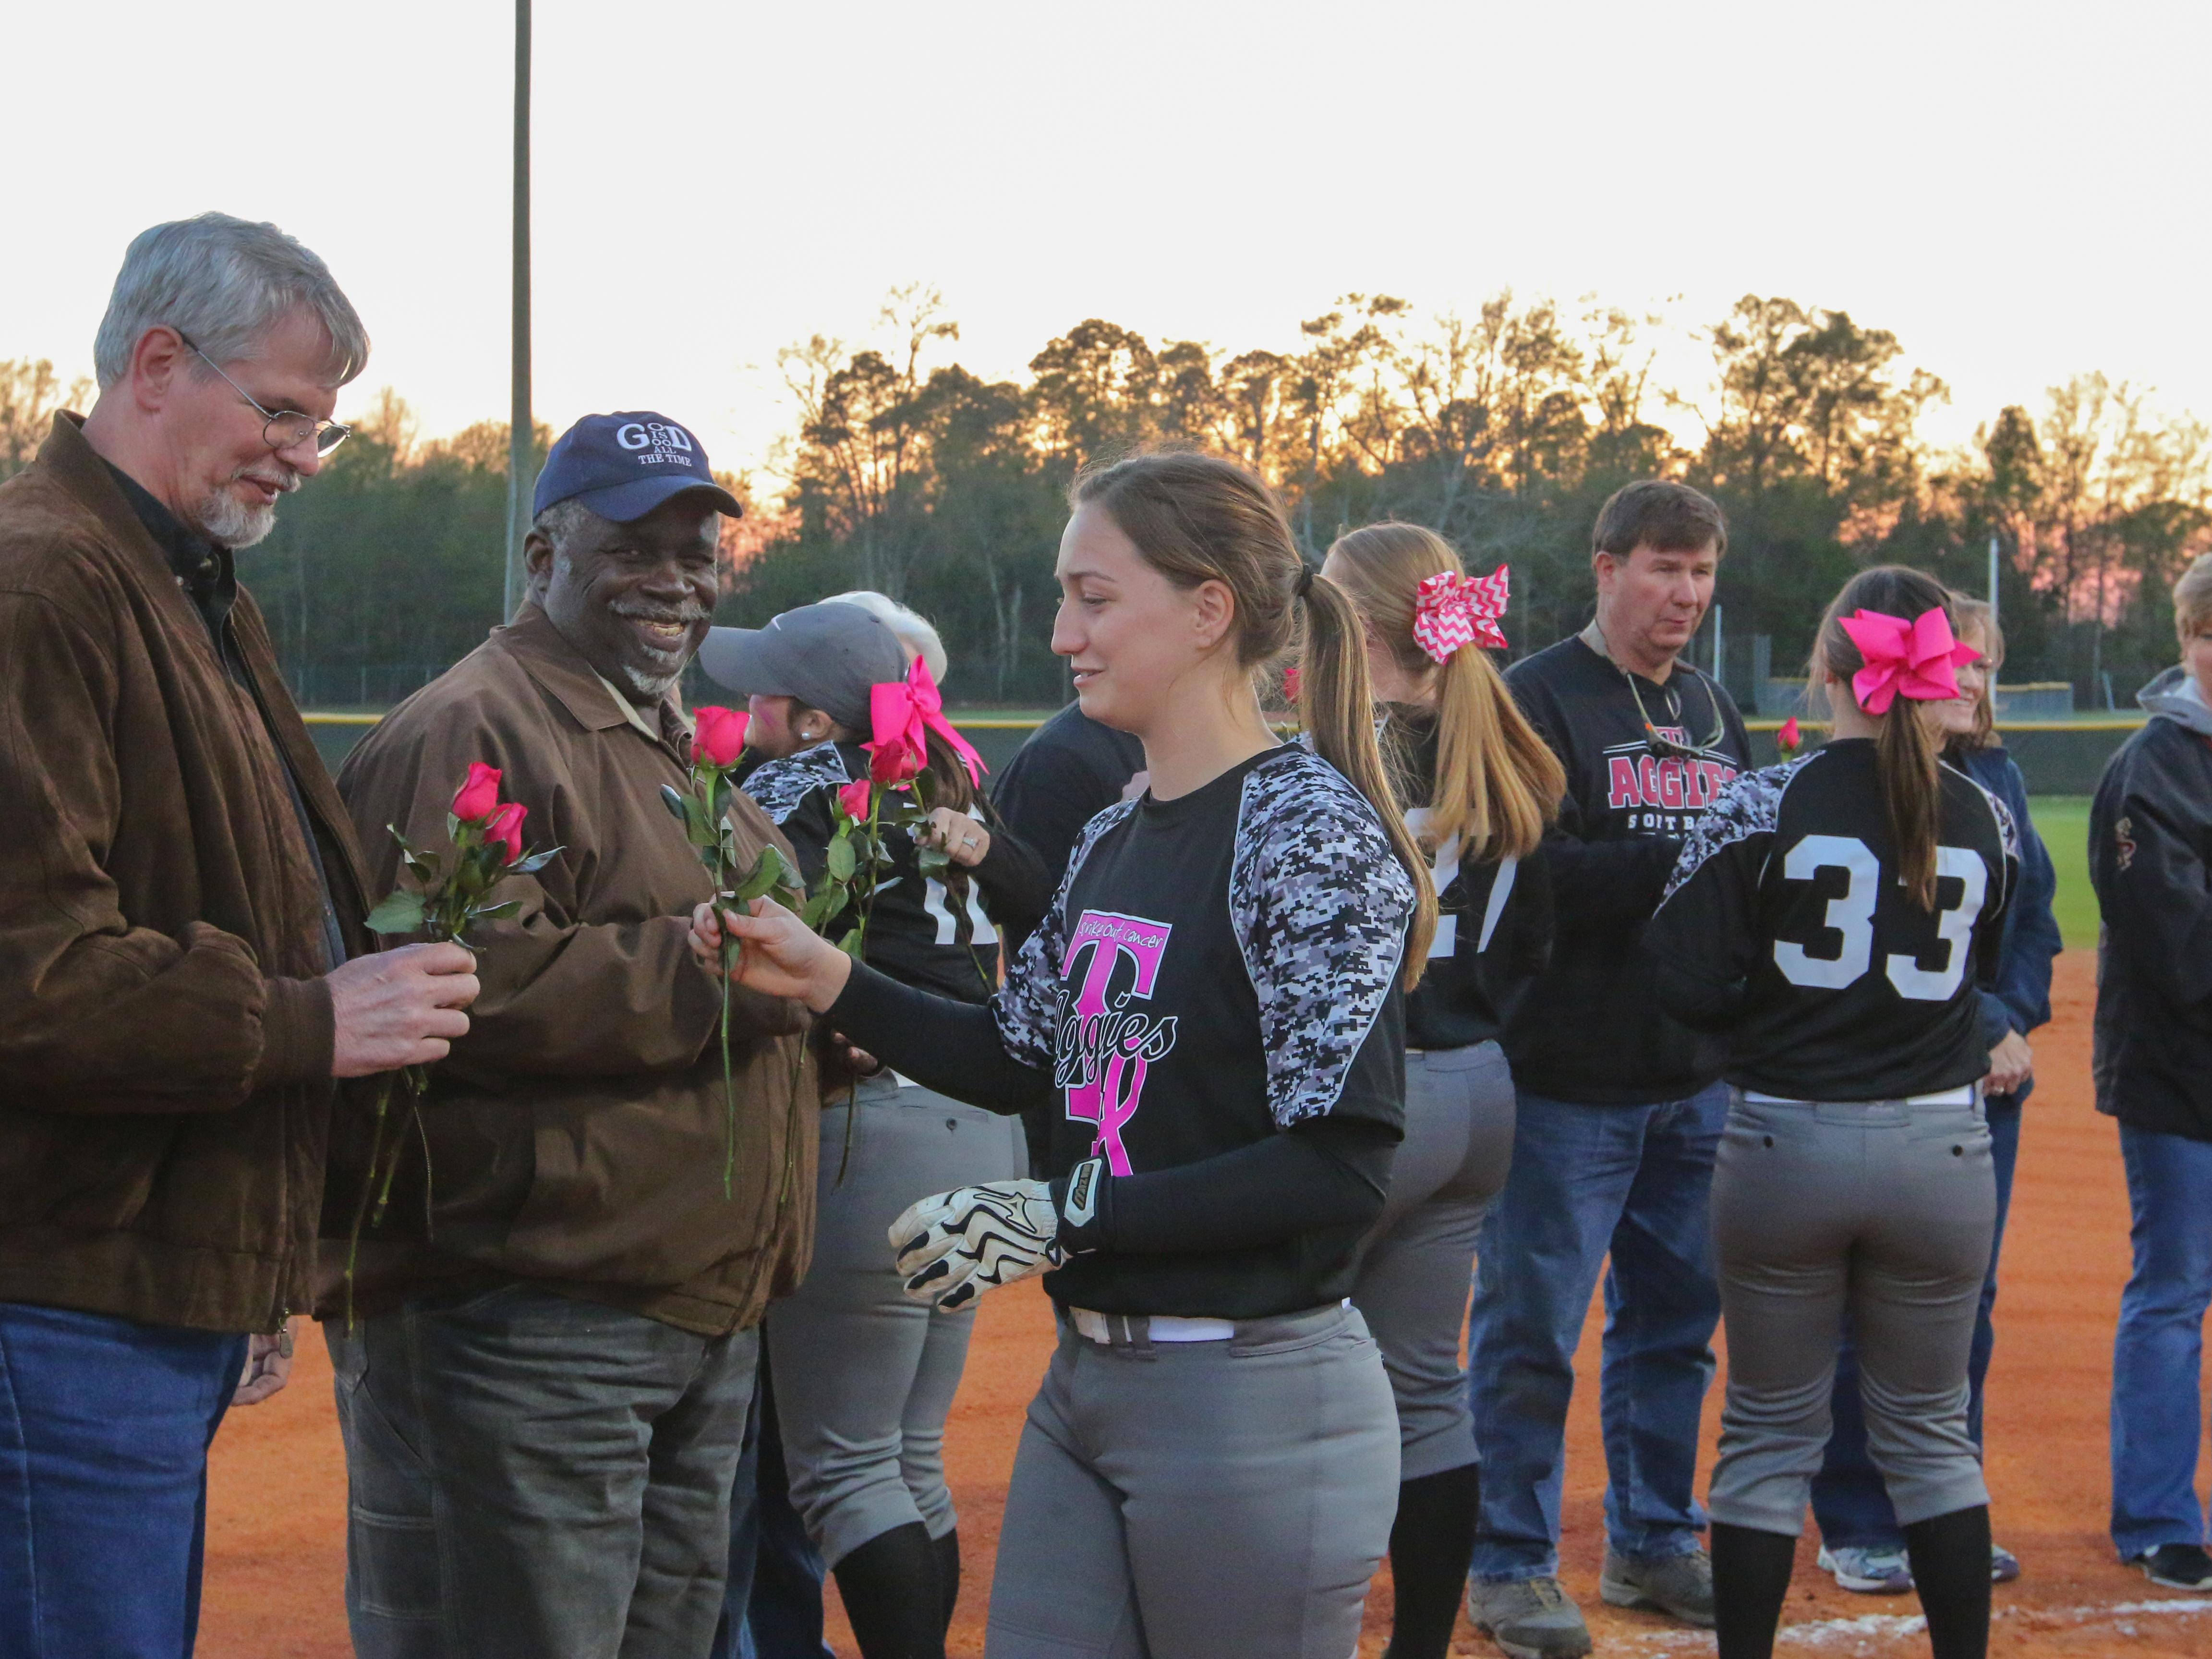 Tate's softball team presents roses to cancer survivors in attendance before the start of the 7th Annual Strike Out Cancer benefit softball game at Tate Monday night. The event helps raise thousands of dollars for the American Cancer Society.